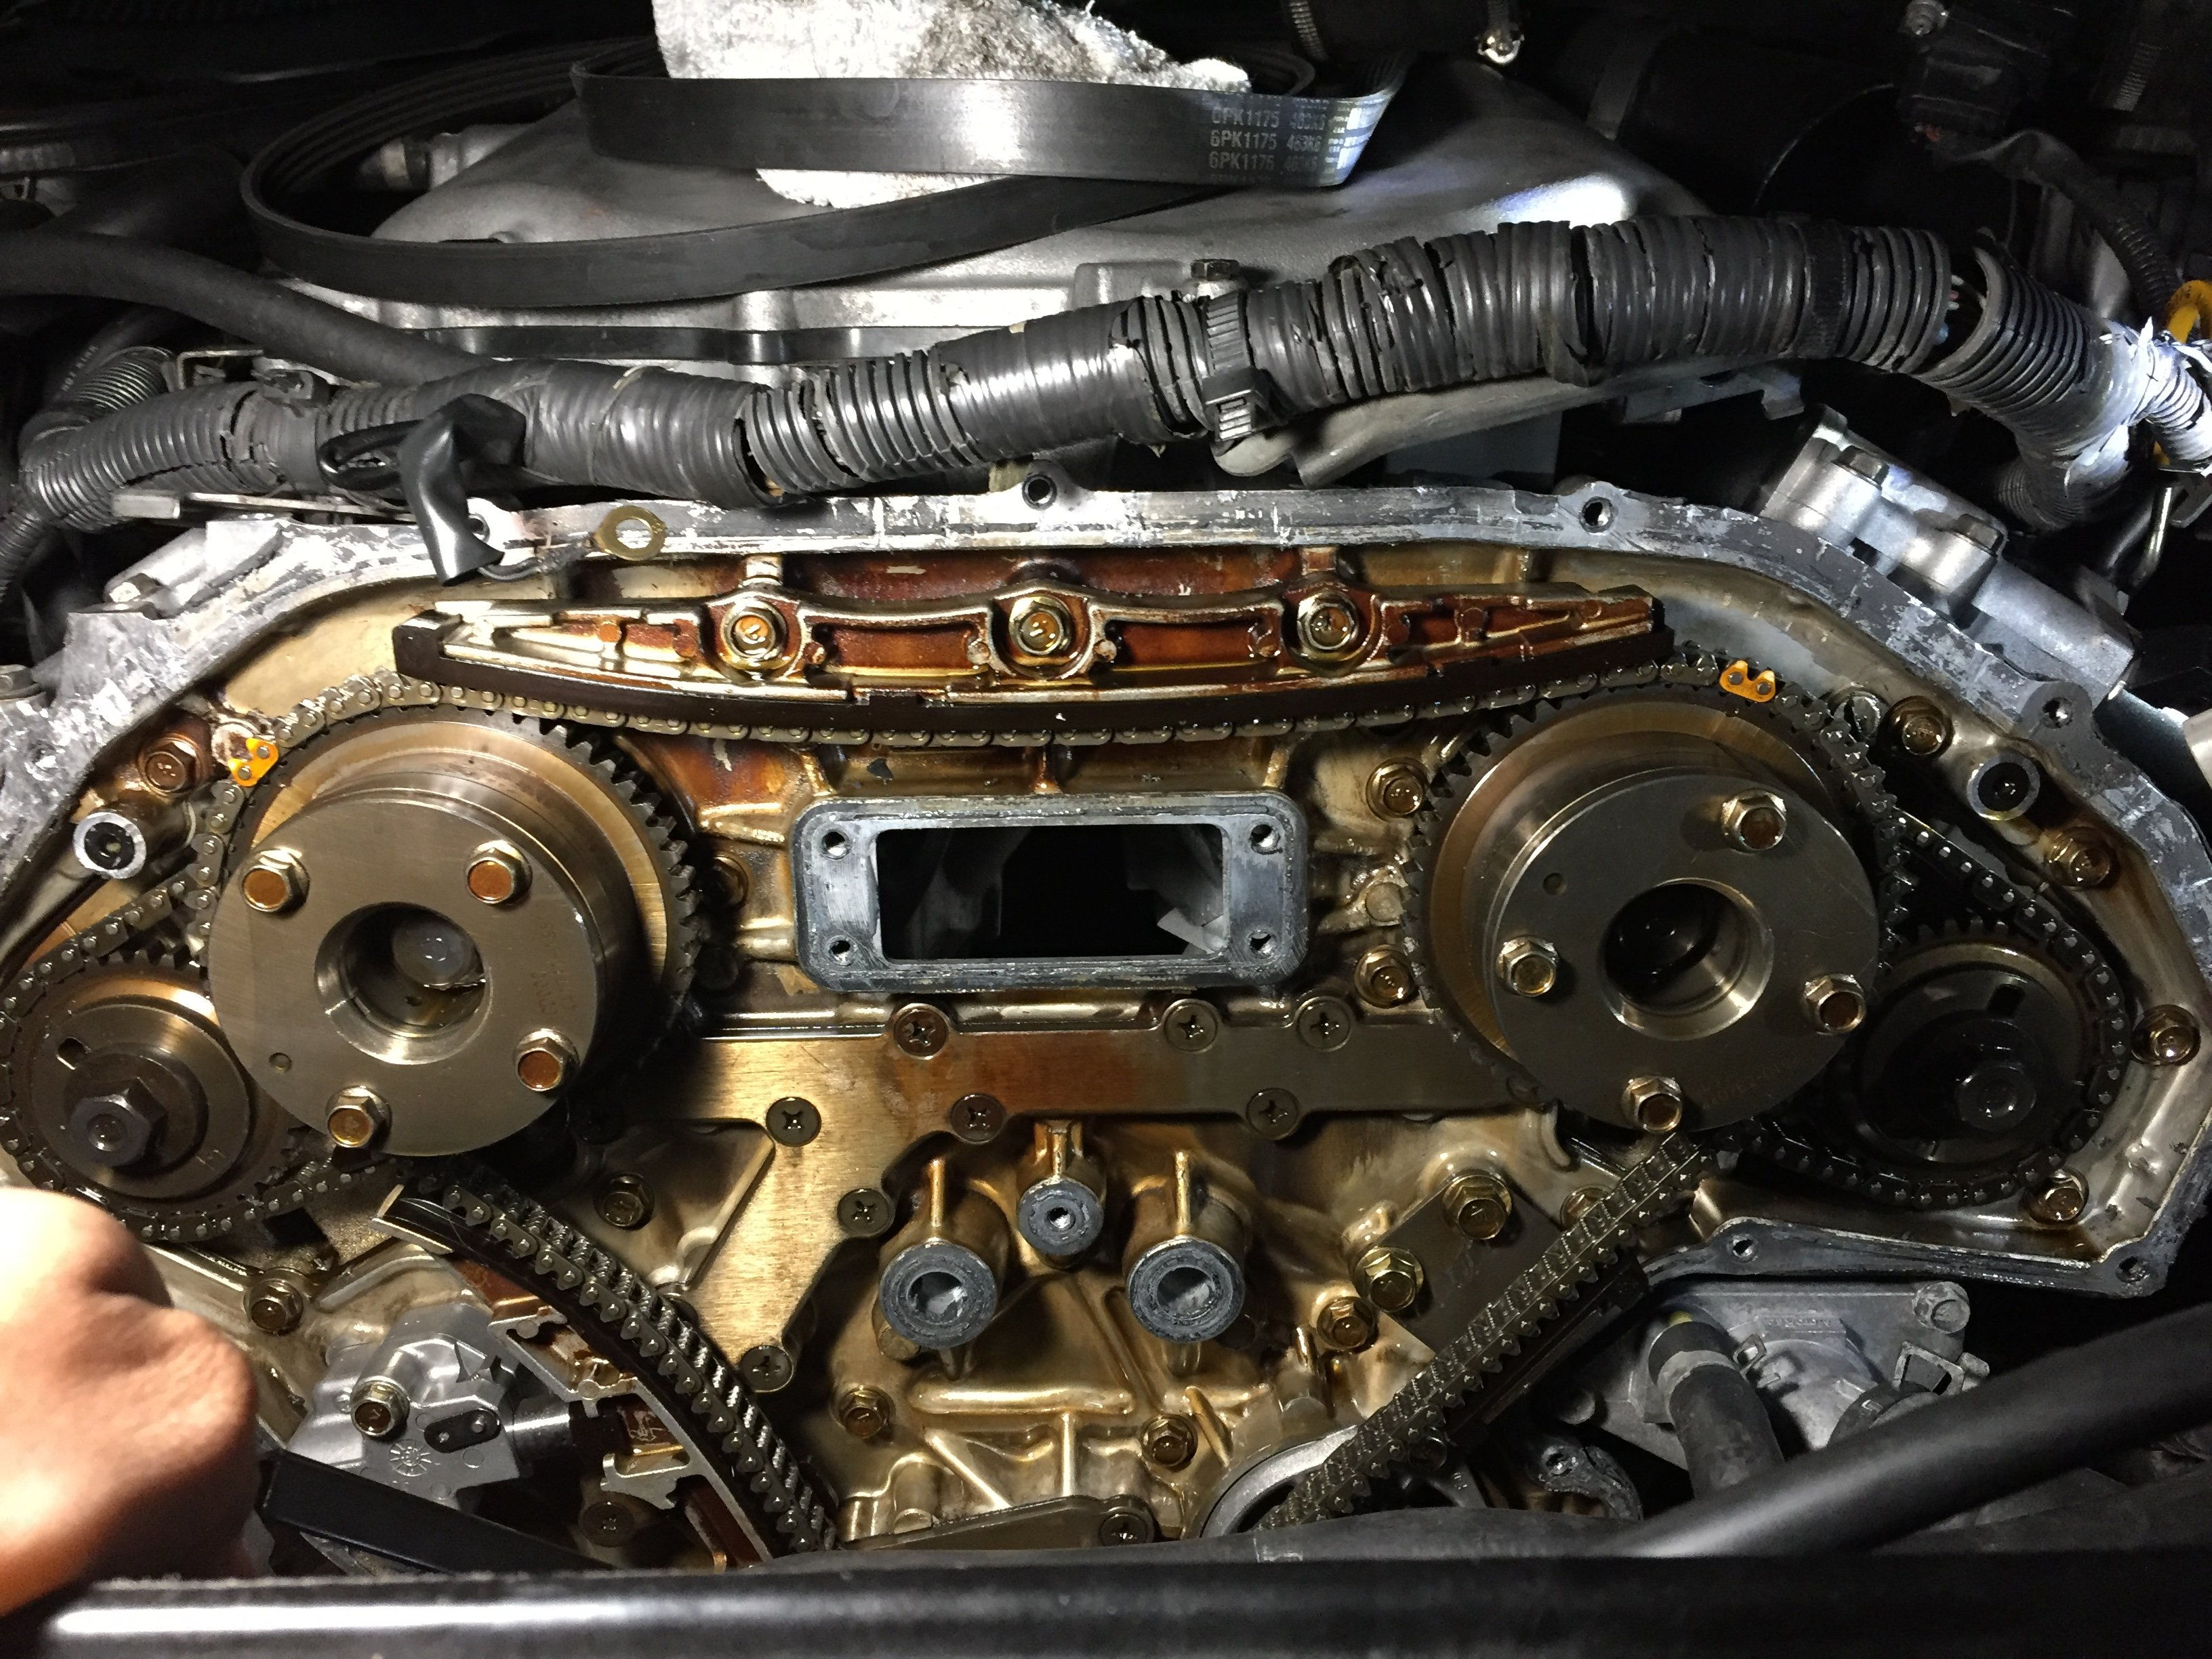 Nissan 350z p0021 timing over advanced  Don't know the ignition